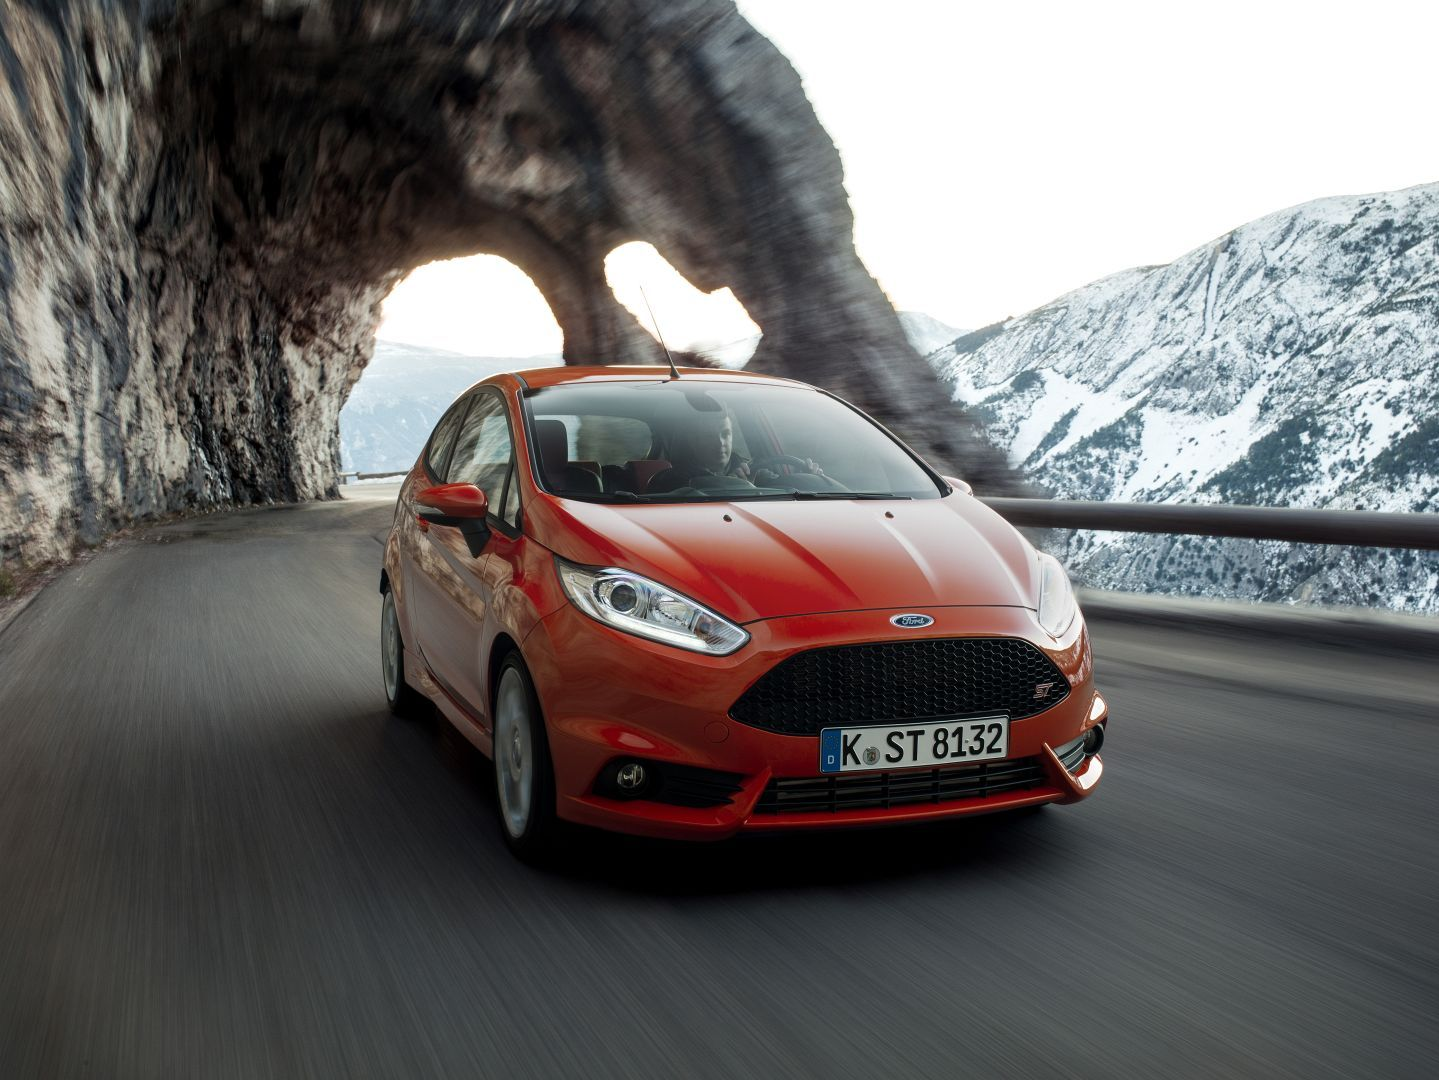 2014 ford fiesta st review http www autoevolution com reviews